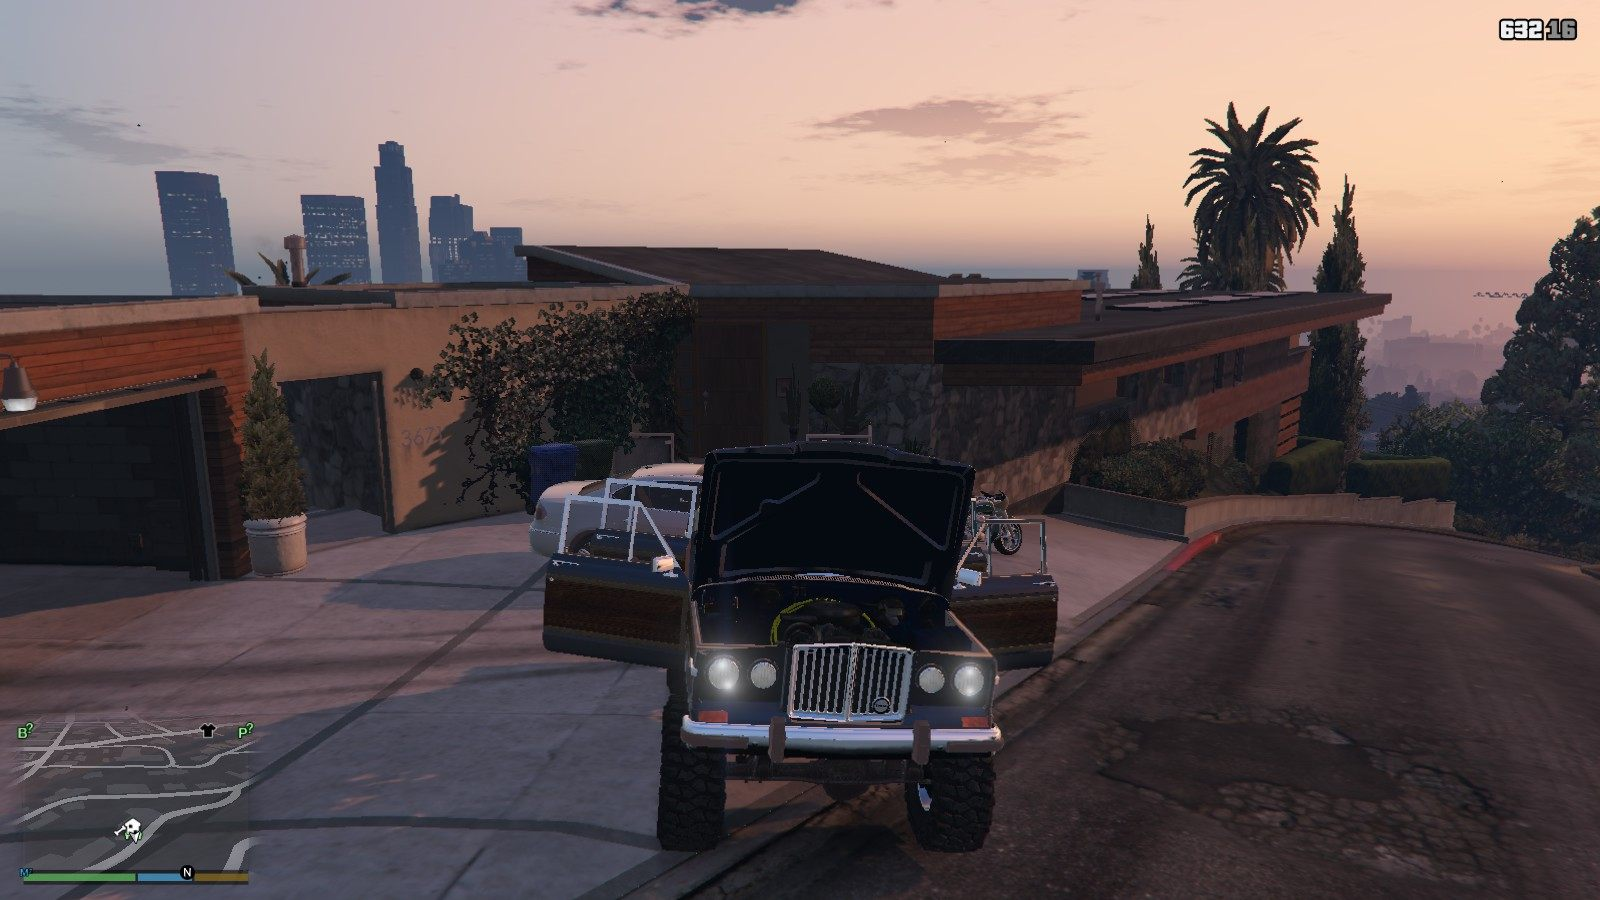 1990 Jeep Grand Wagoneer GTA5 Mods (5)